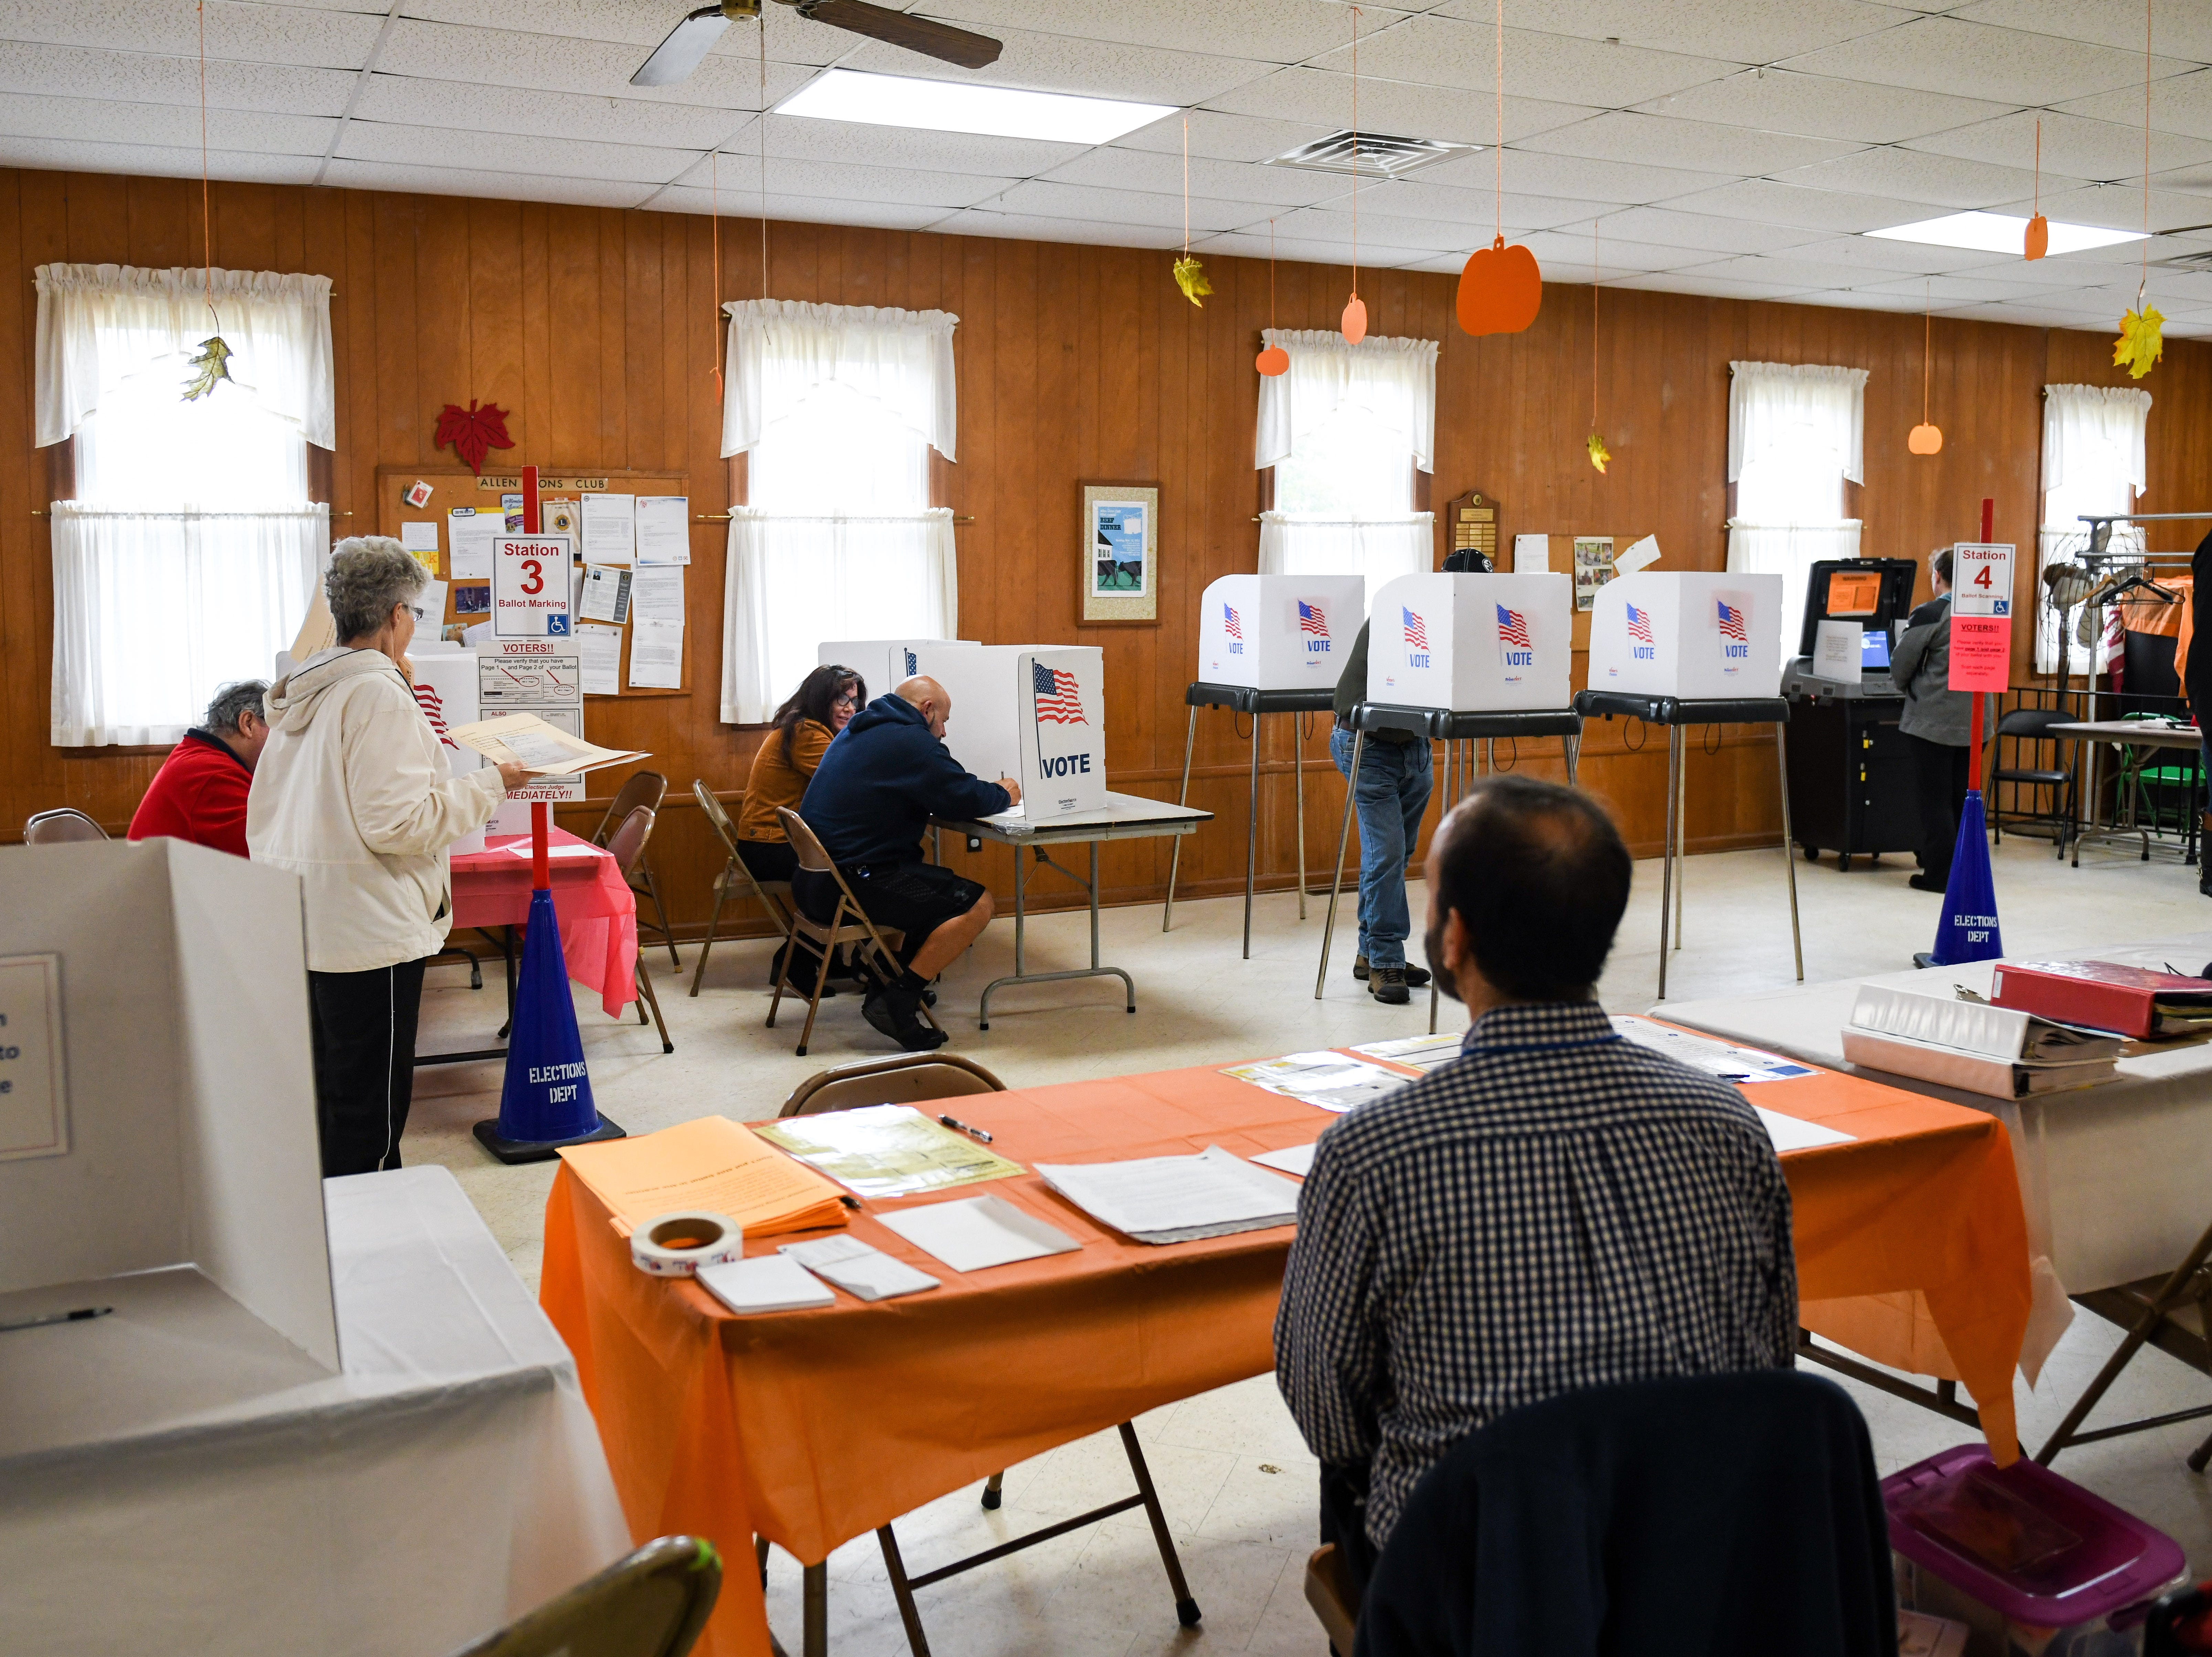 A steady trickle of residents voted at the Allen community hall on Tuesday, Nov 6, 2018.